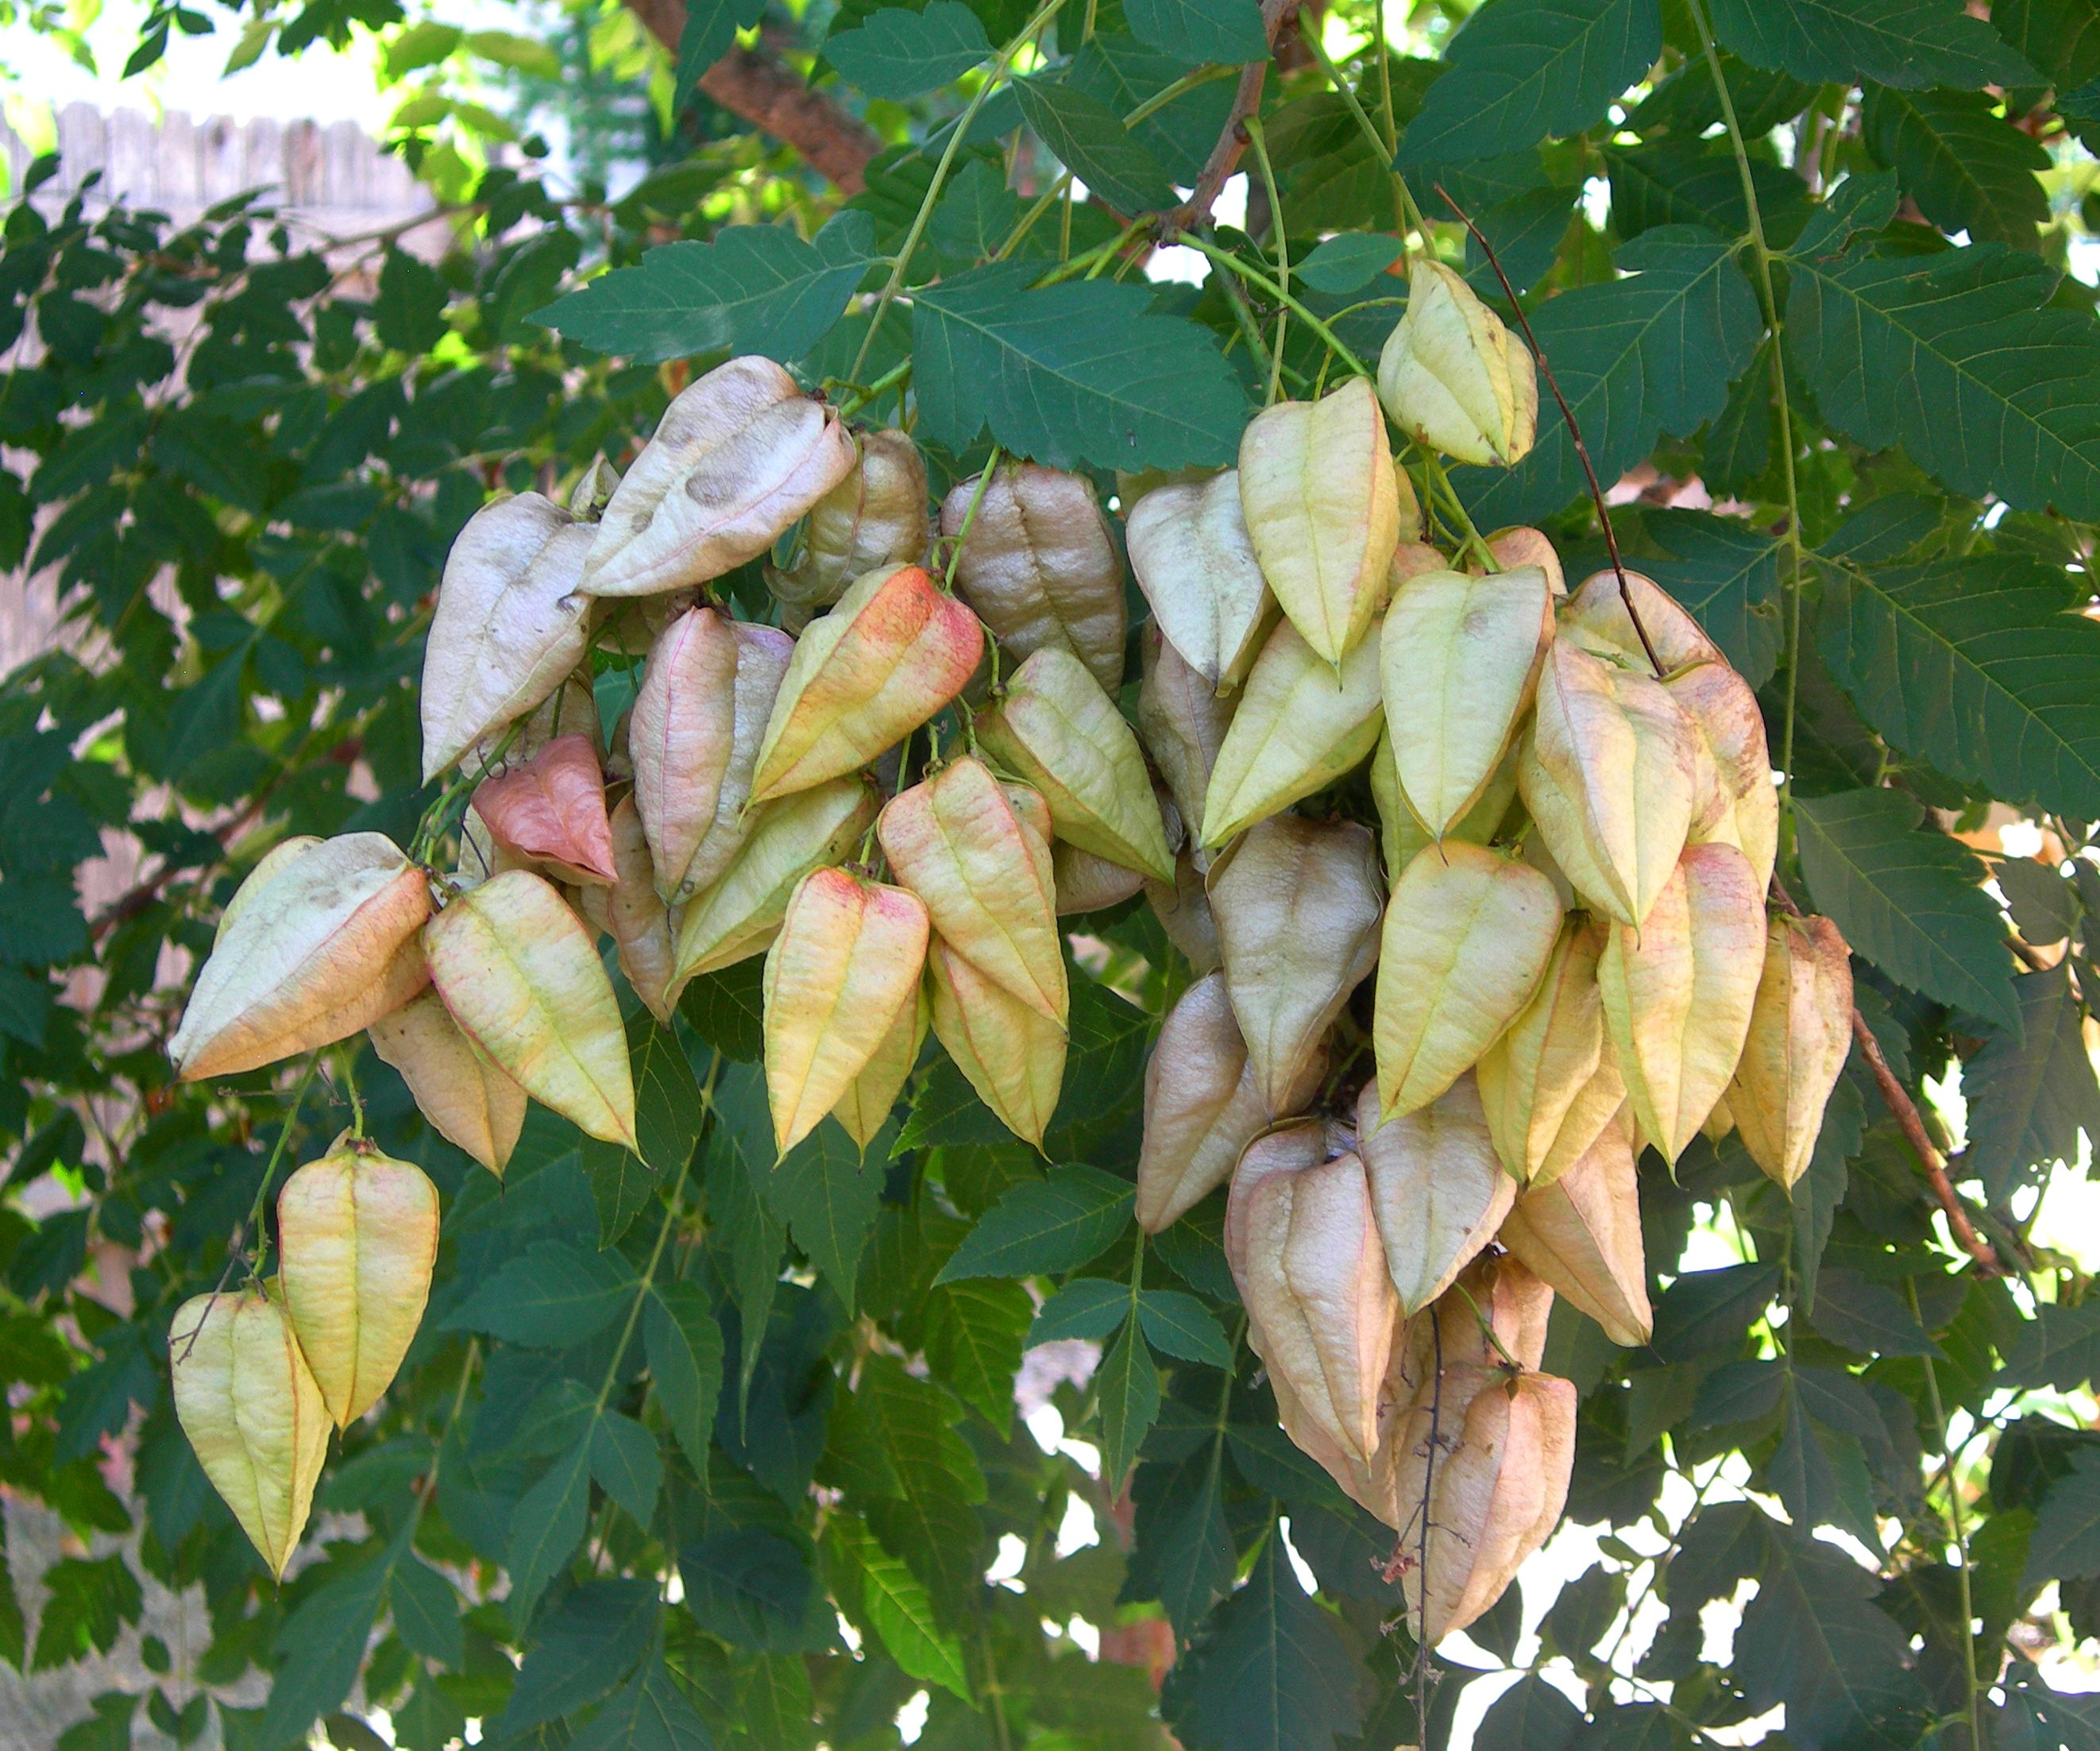 Golden Rain Tree Seed Pods Jpg 2644 2204 Golden Rain Tree Seed Pods Deciduous Trees